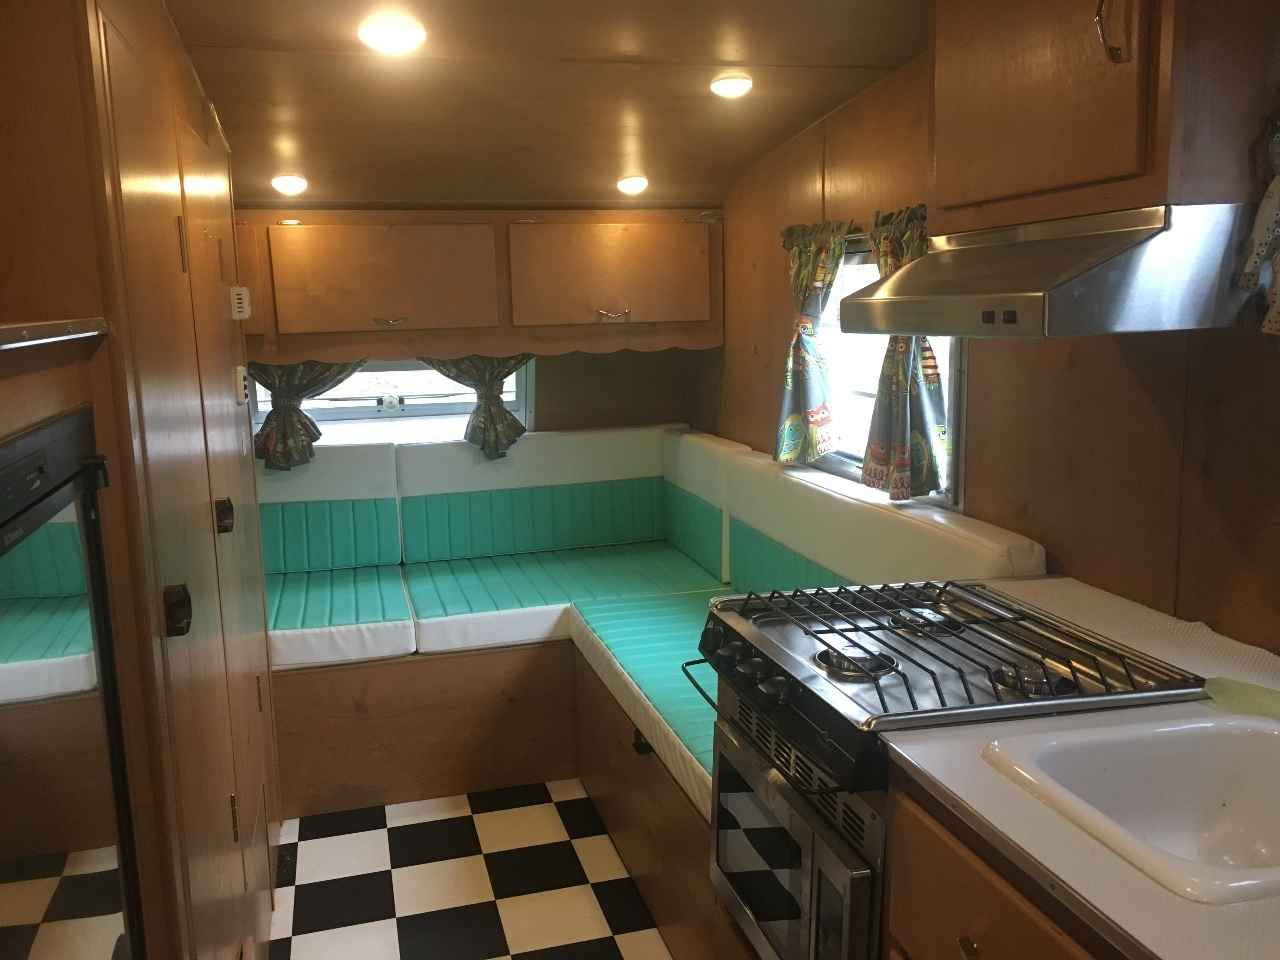 2015 Used Shasta AIRFLYTE Travel Trailer in Ohio OH